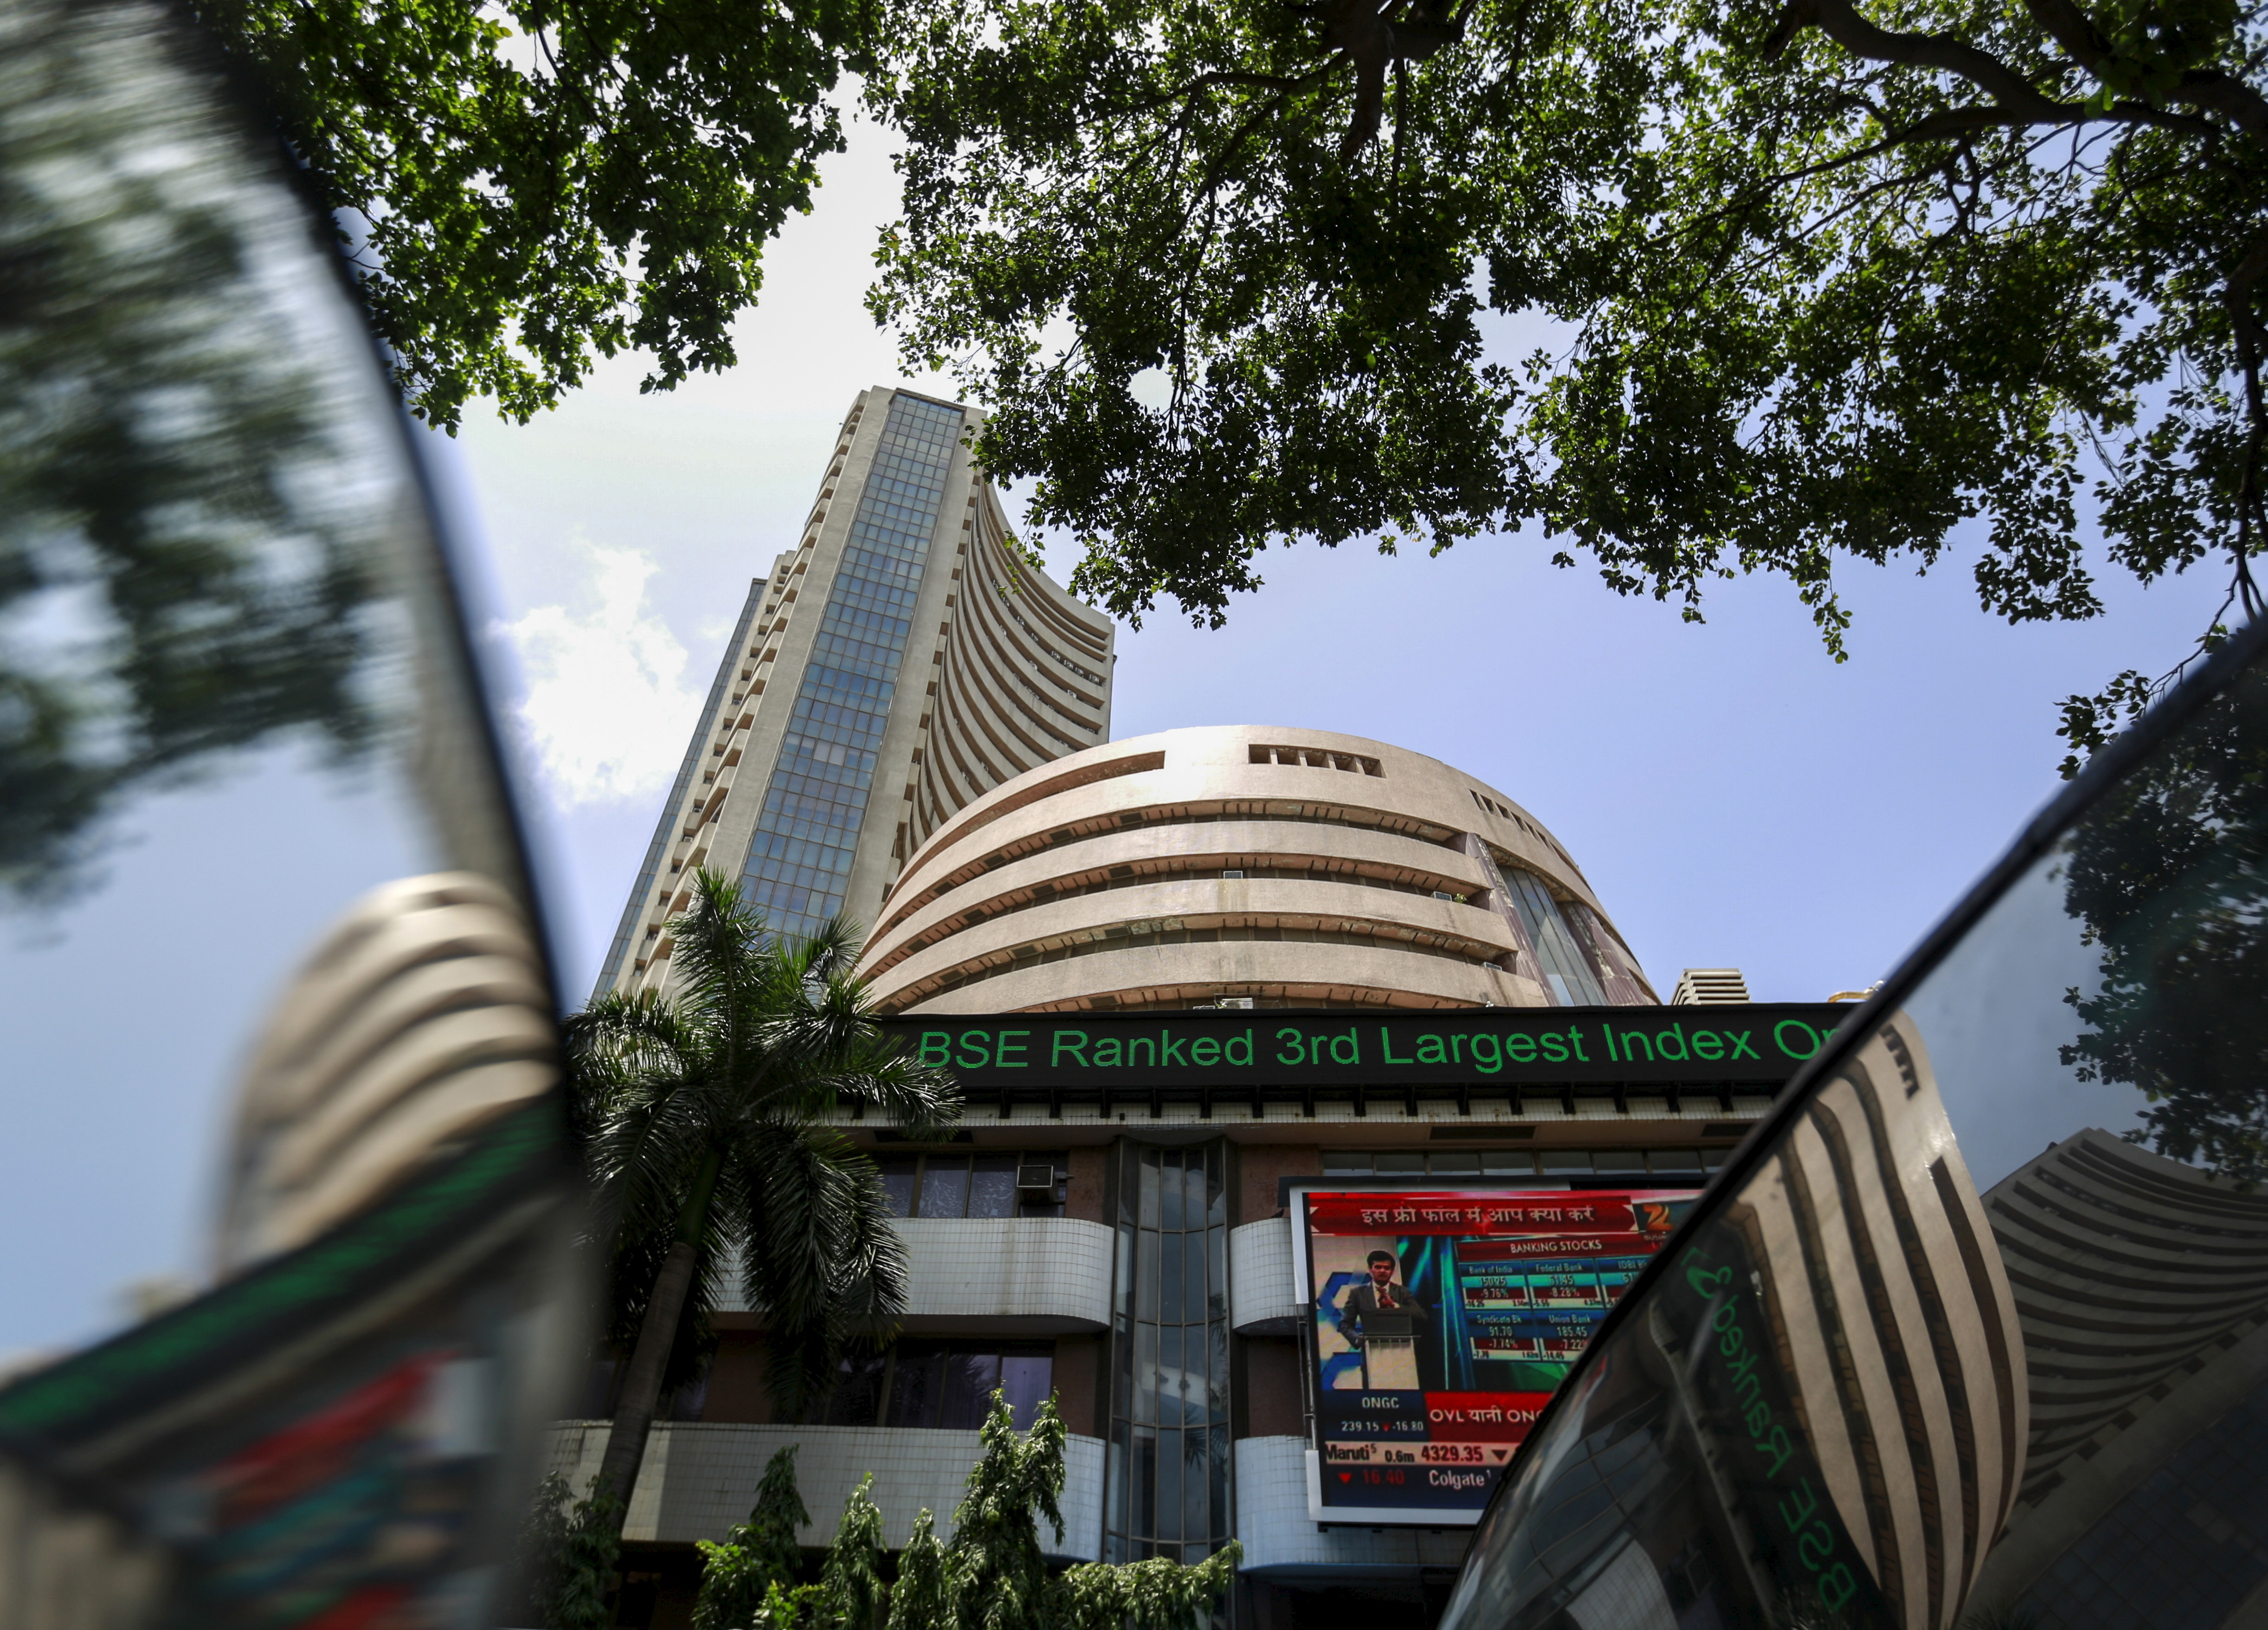 The Bombay Stock Exchange (BSE) building is pictured next to a police van in Mumbai, India, August 24, 2015. REUTERS/Danish Siddiqui